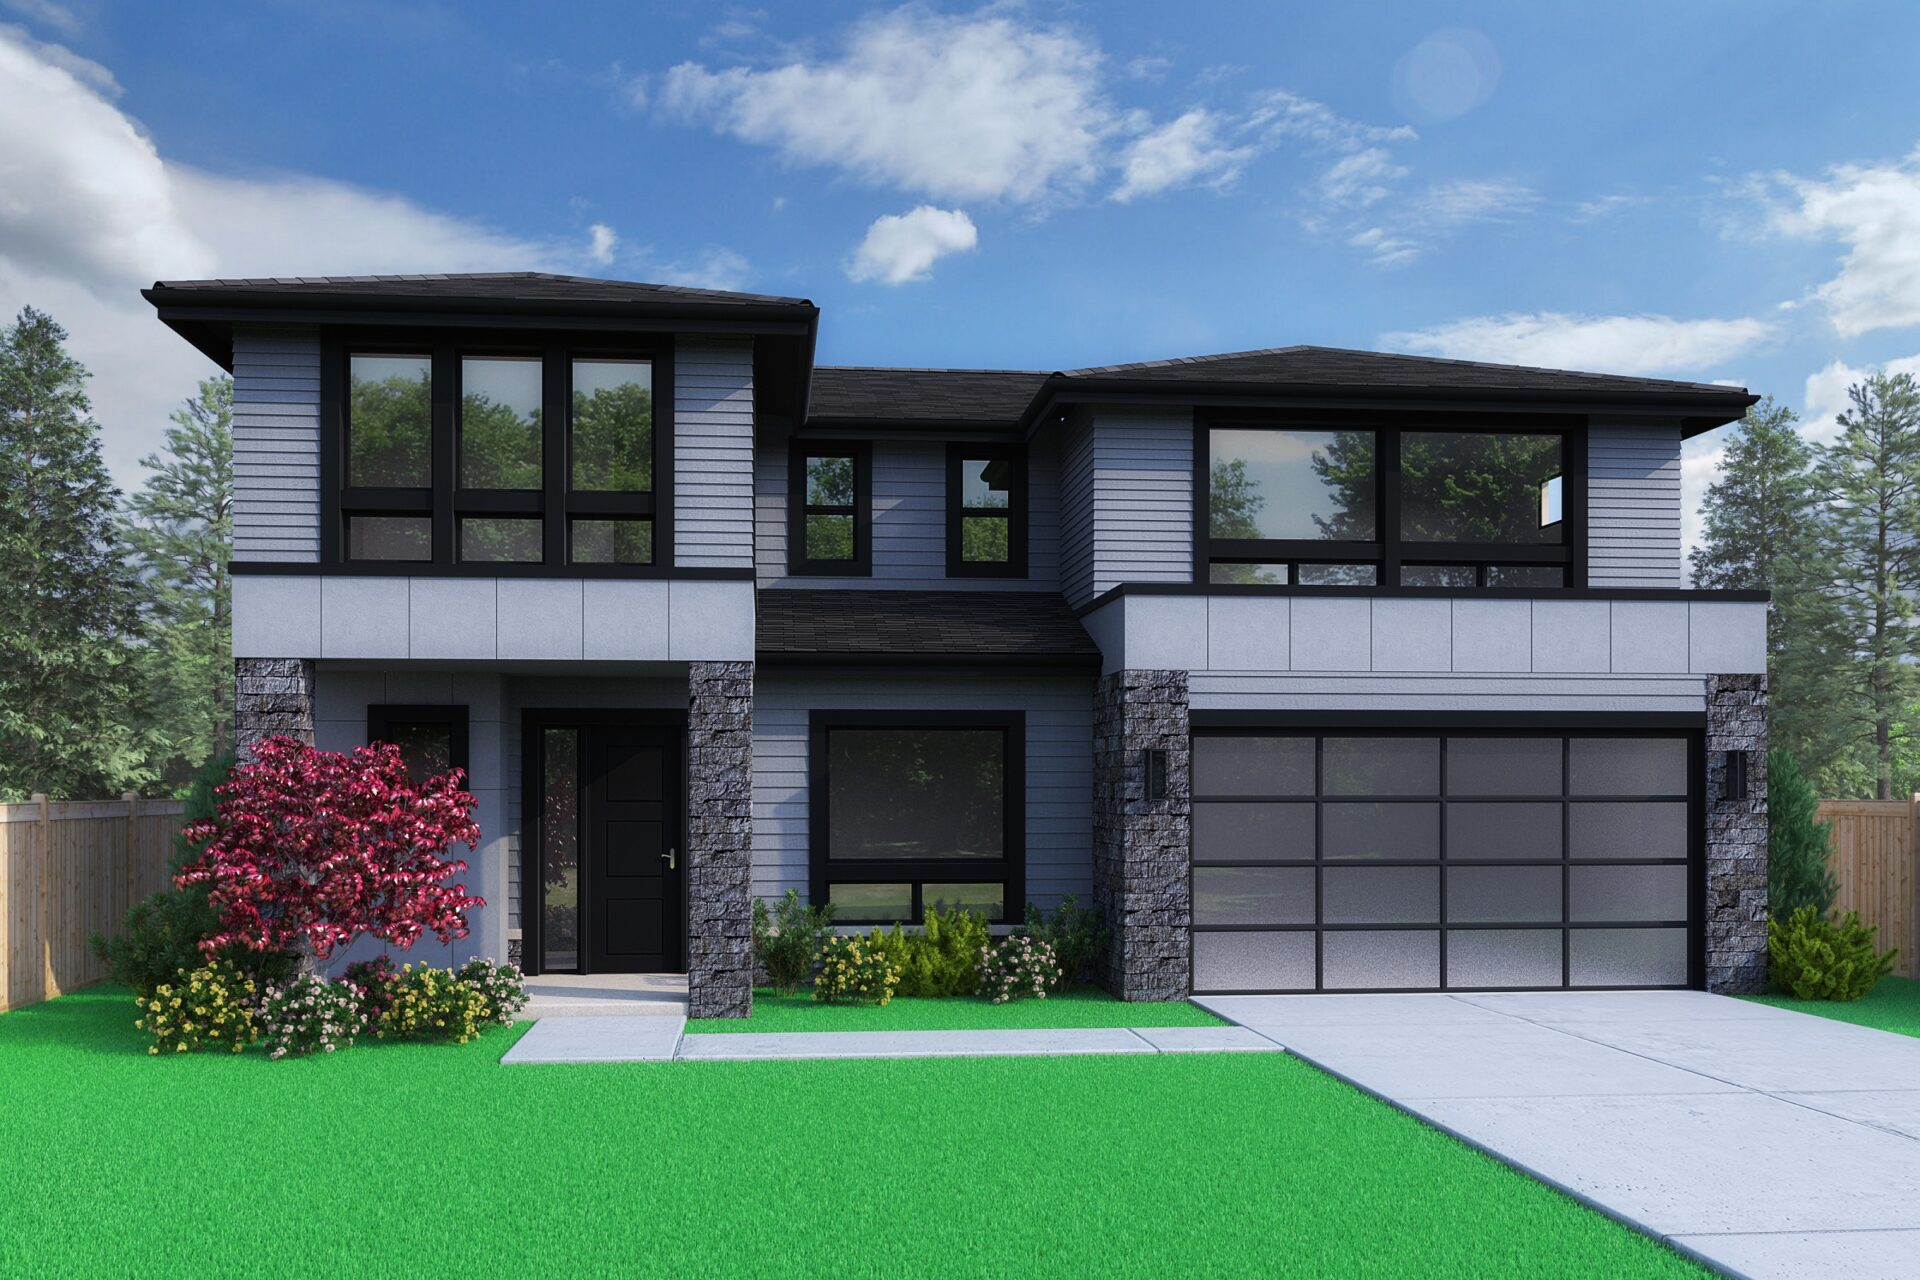 View our new luxury home construction on 11008 NE 64th St, in Kirkland, WA from MN Custom Homes